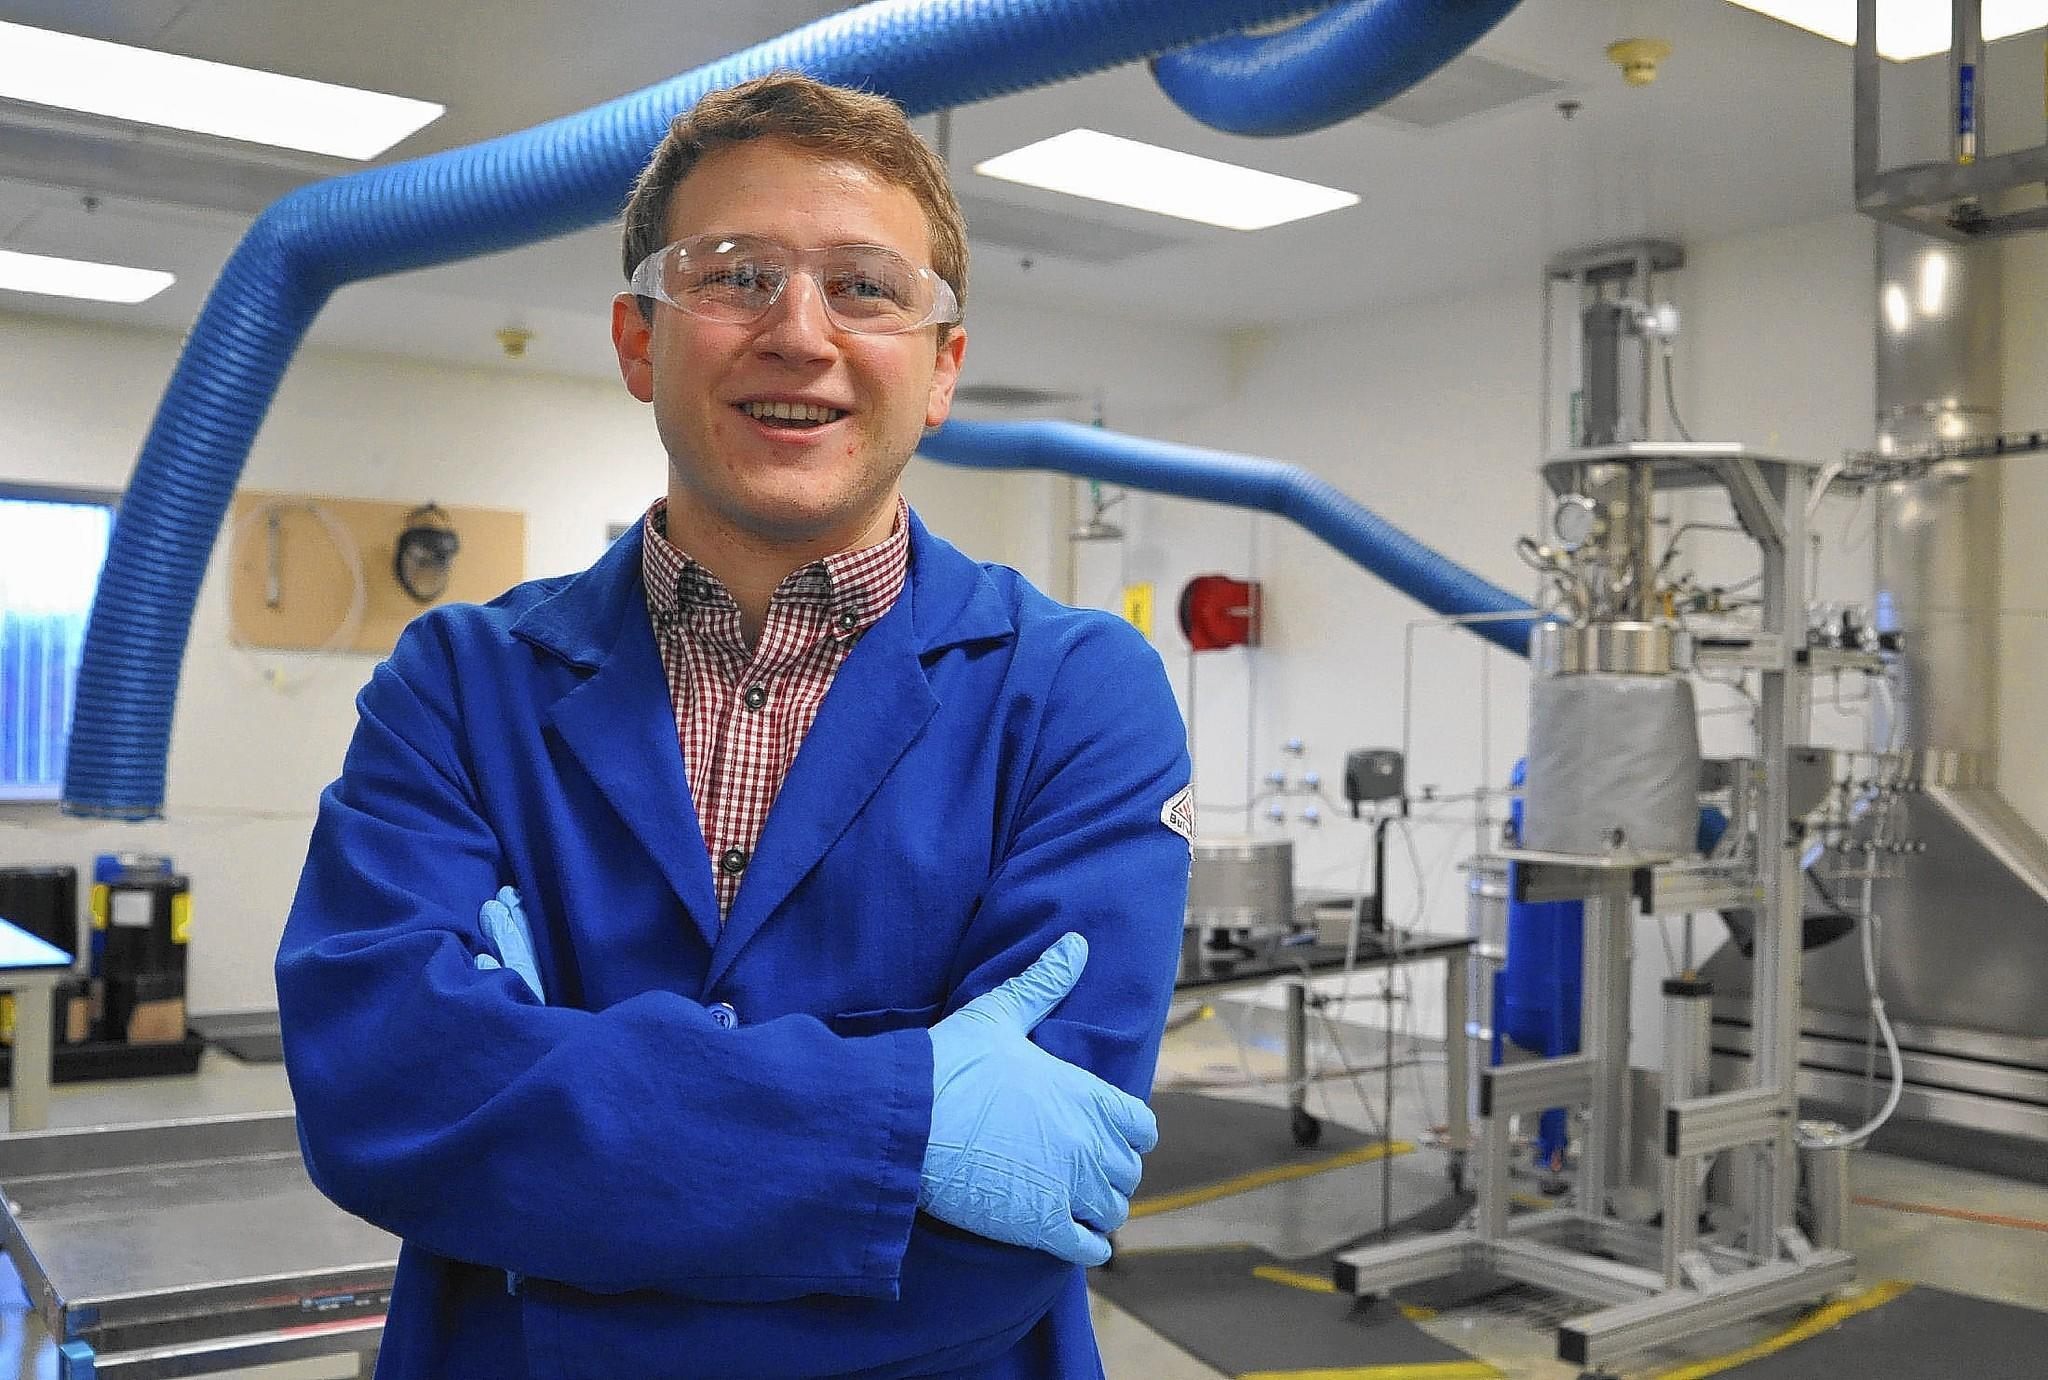 Peter DiPrinzio, 22, a graduate of Middlebury College, began a two-year job through Venture for America, at Pixelligent, a startup which makes advanced materials for electronic devices.